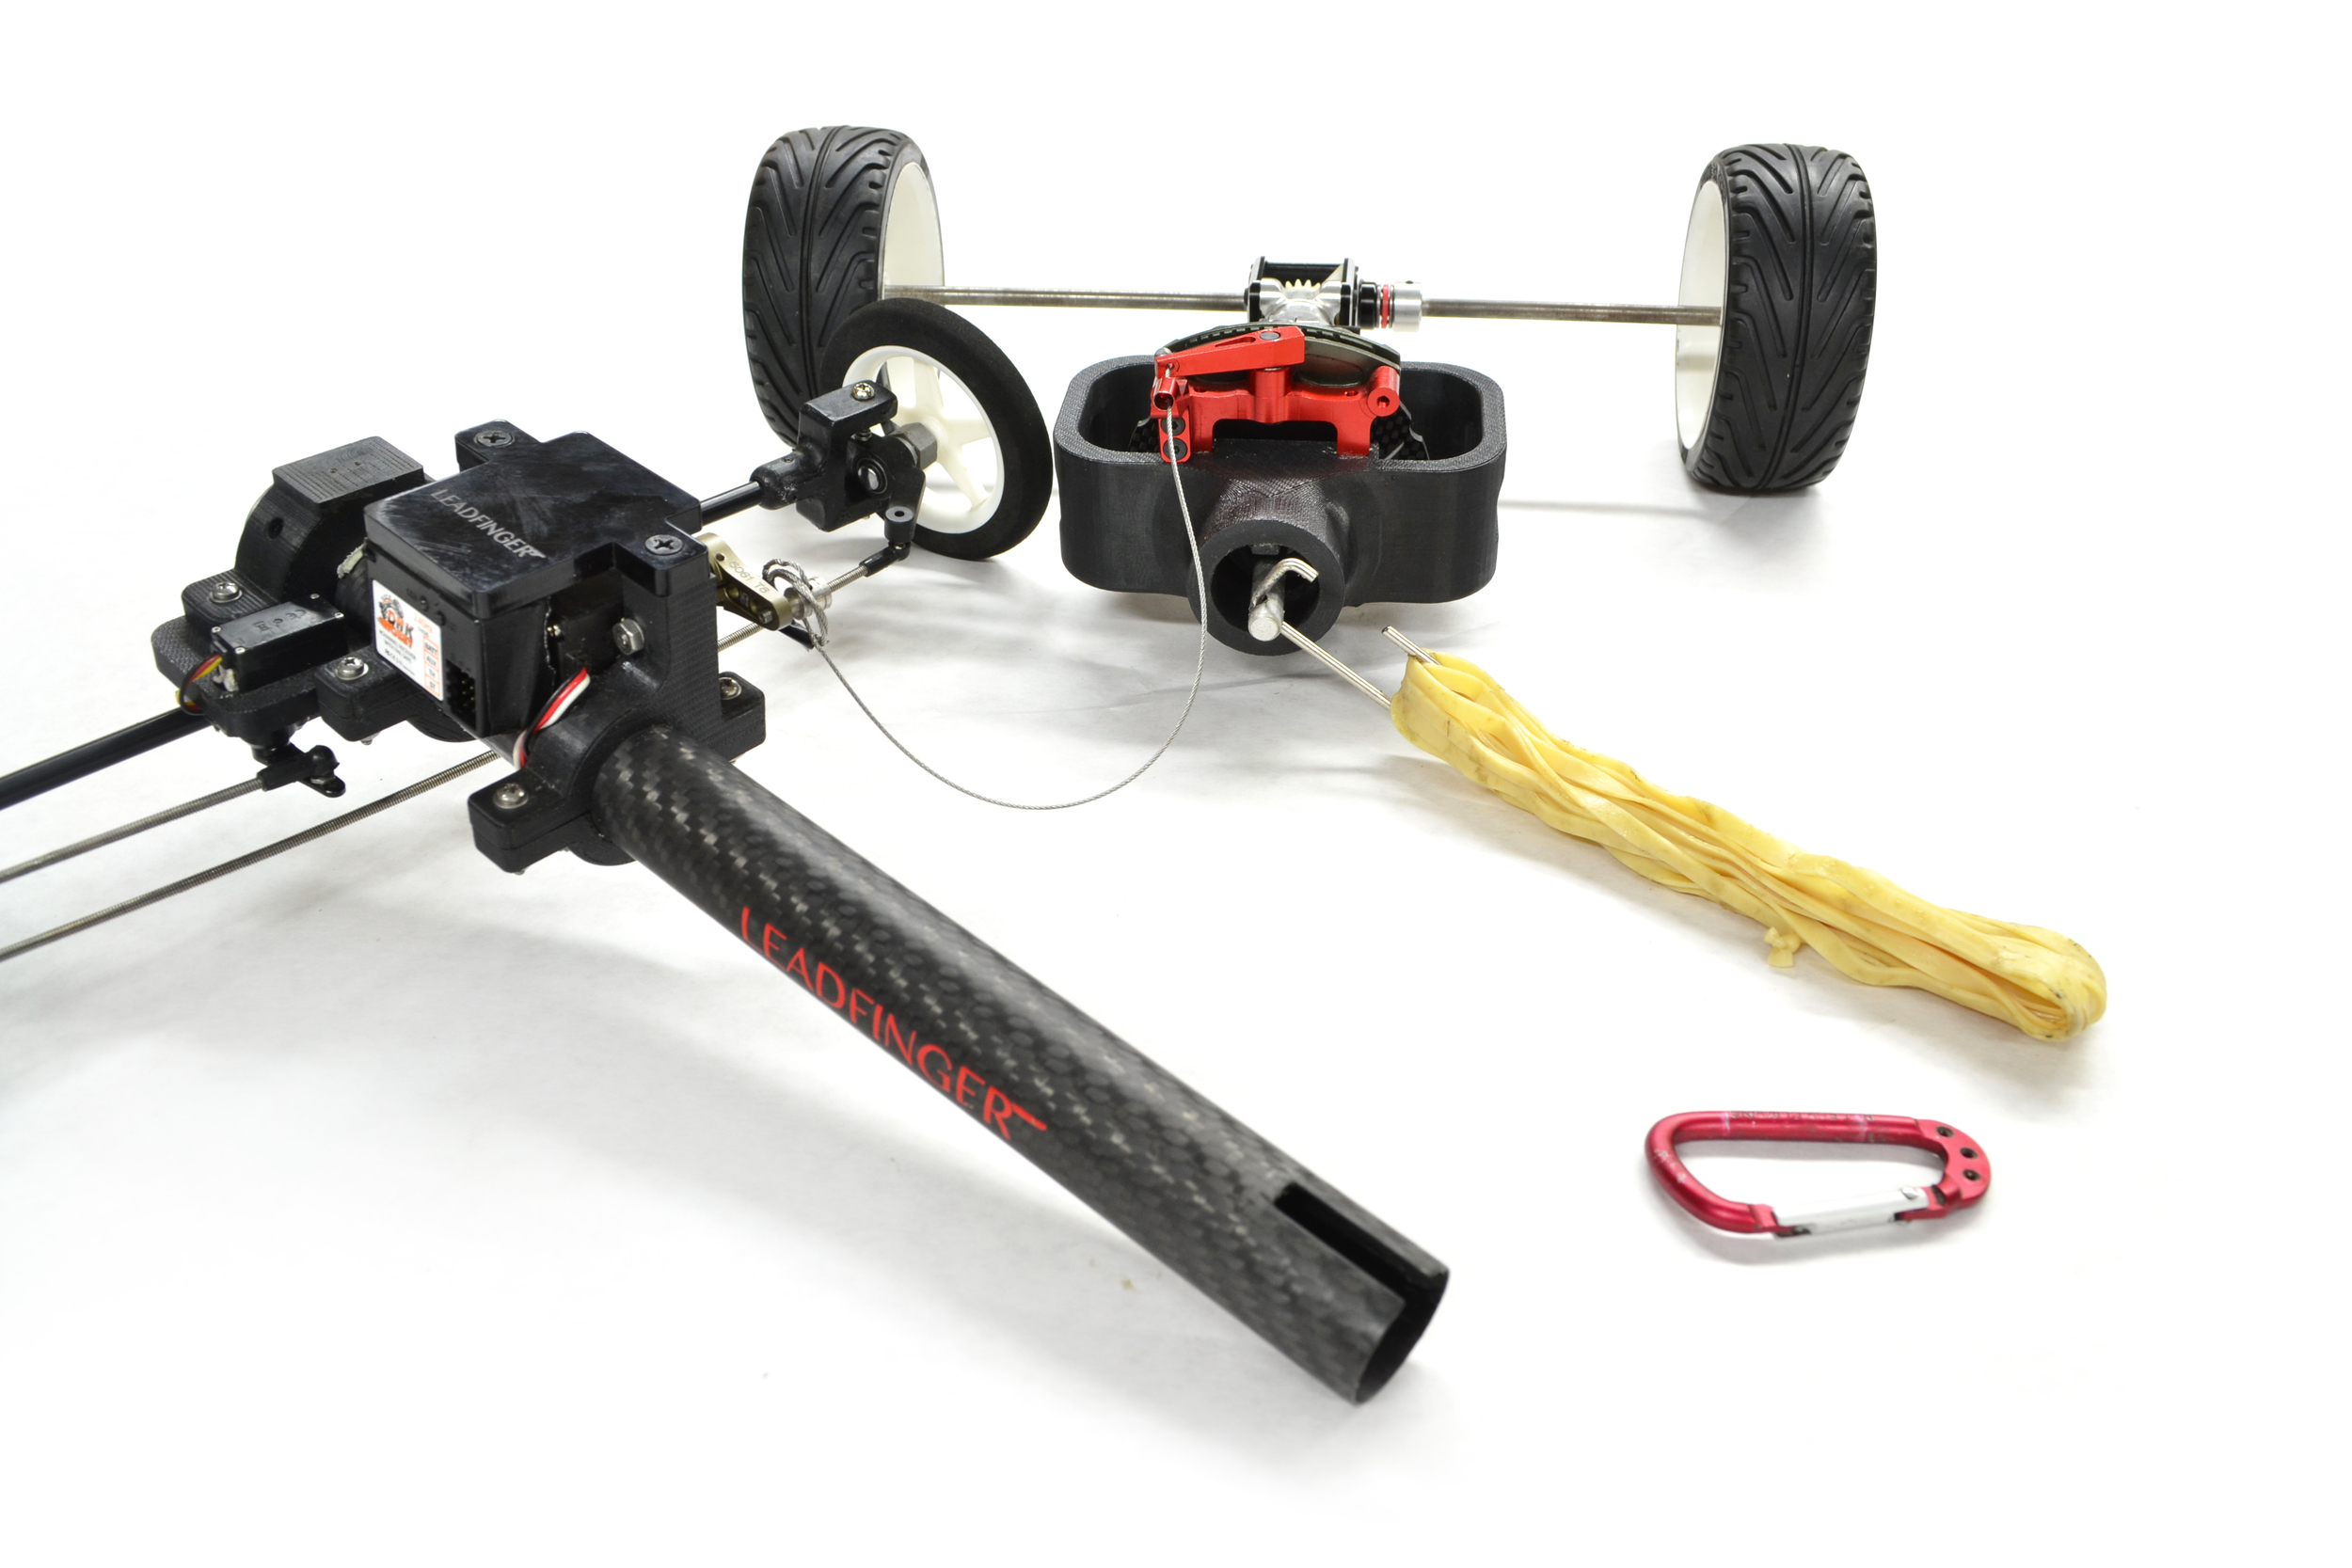 Rubber bands are loaded into the power tube by disconnected the driveshaft portion from the body of the car. Components are keyed and register automatically without additional fasteners.